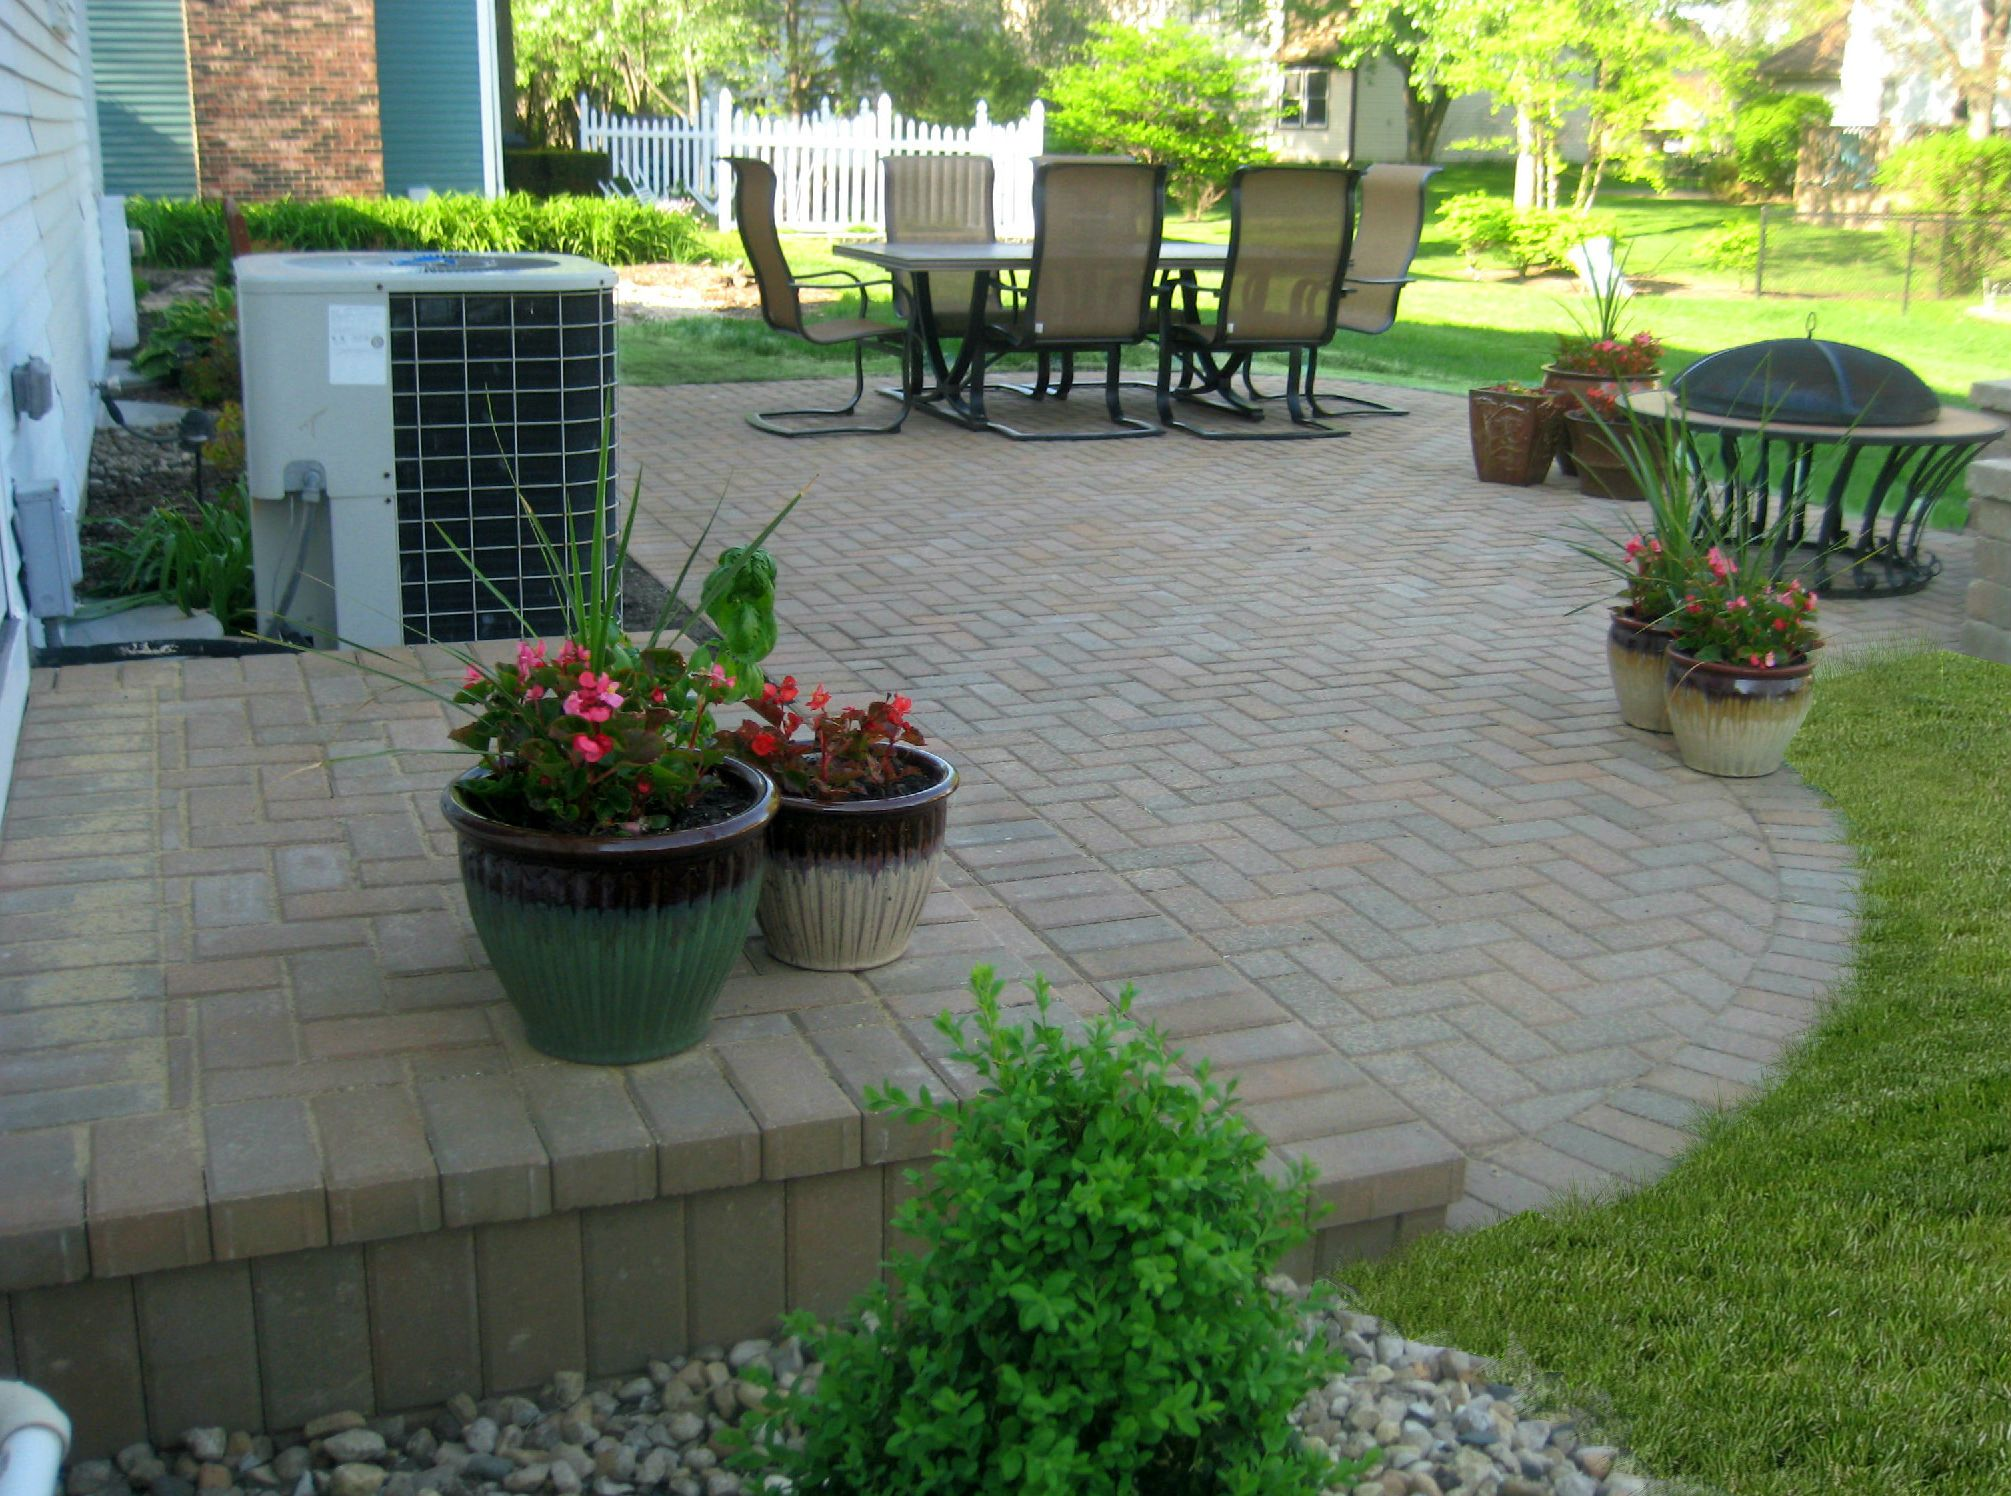 Belgard Holland Stone Patio By Wilmette, IL Patio Builder